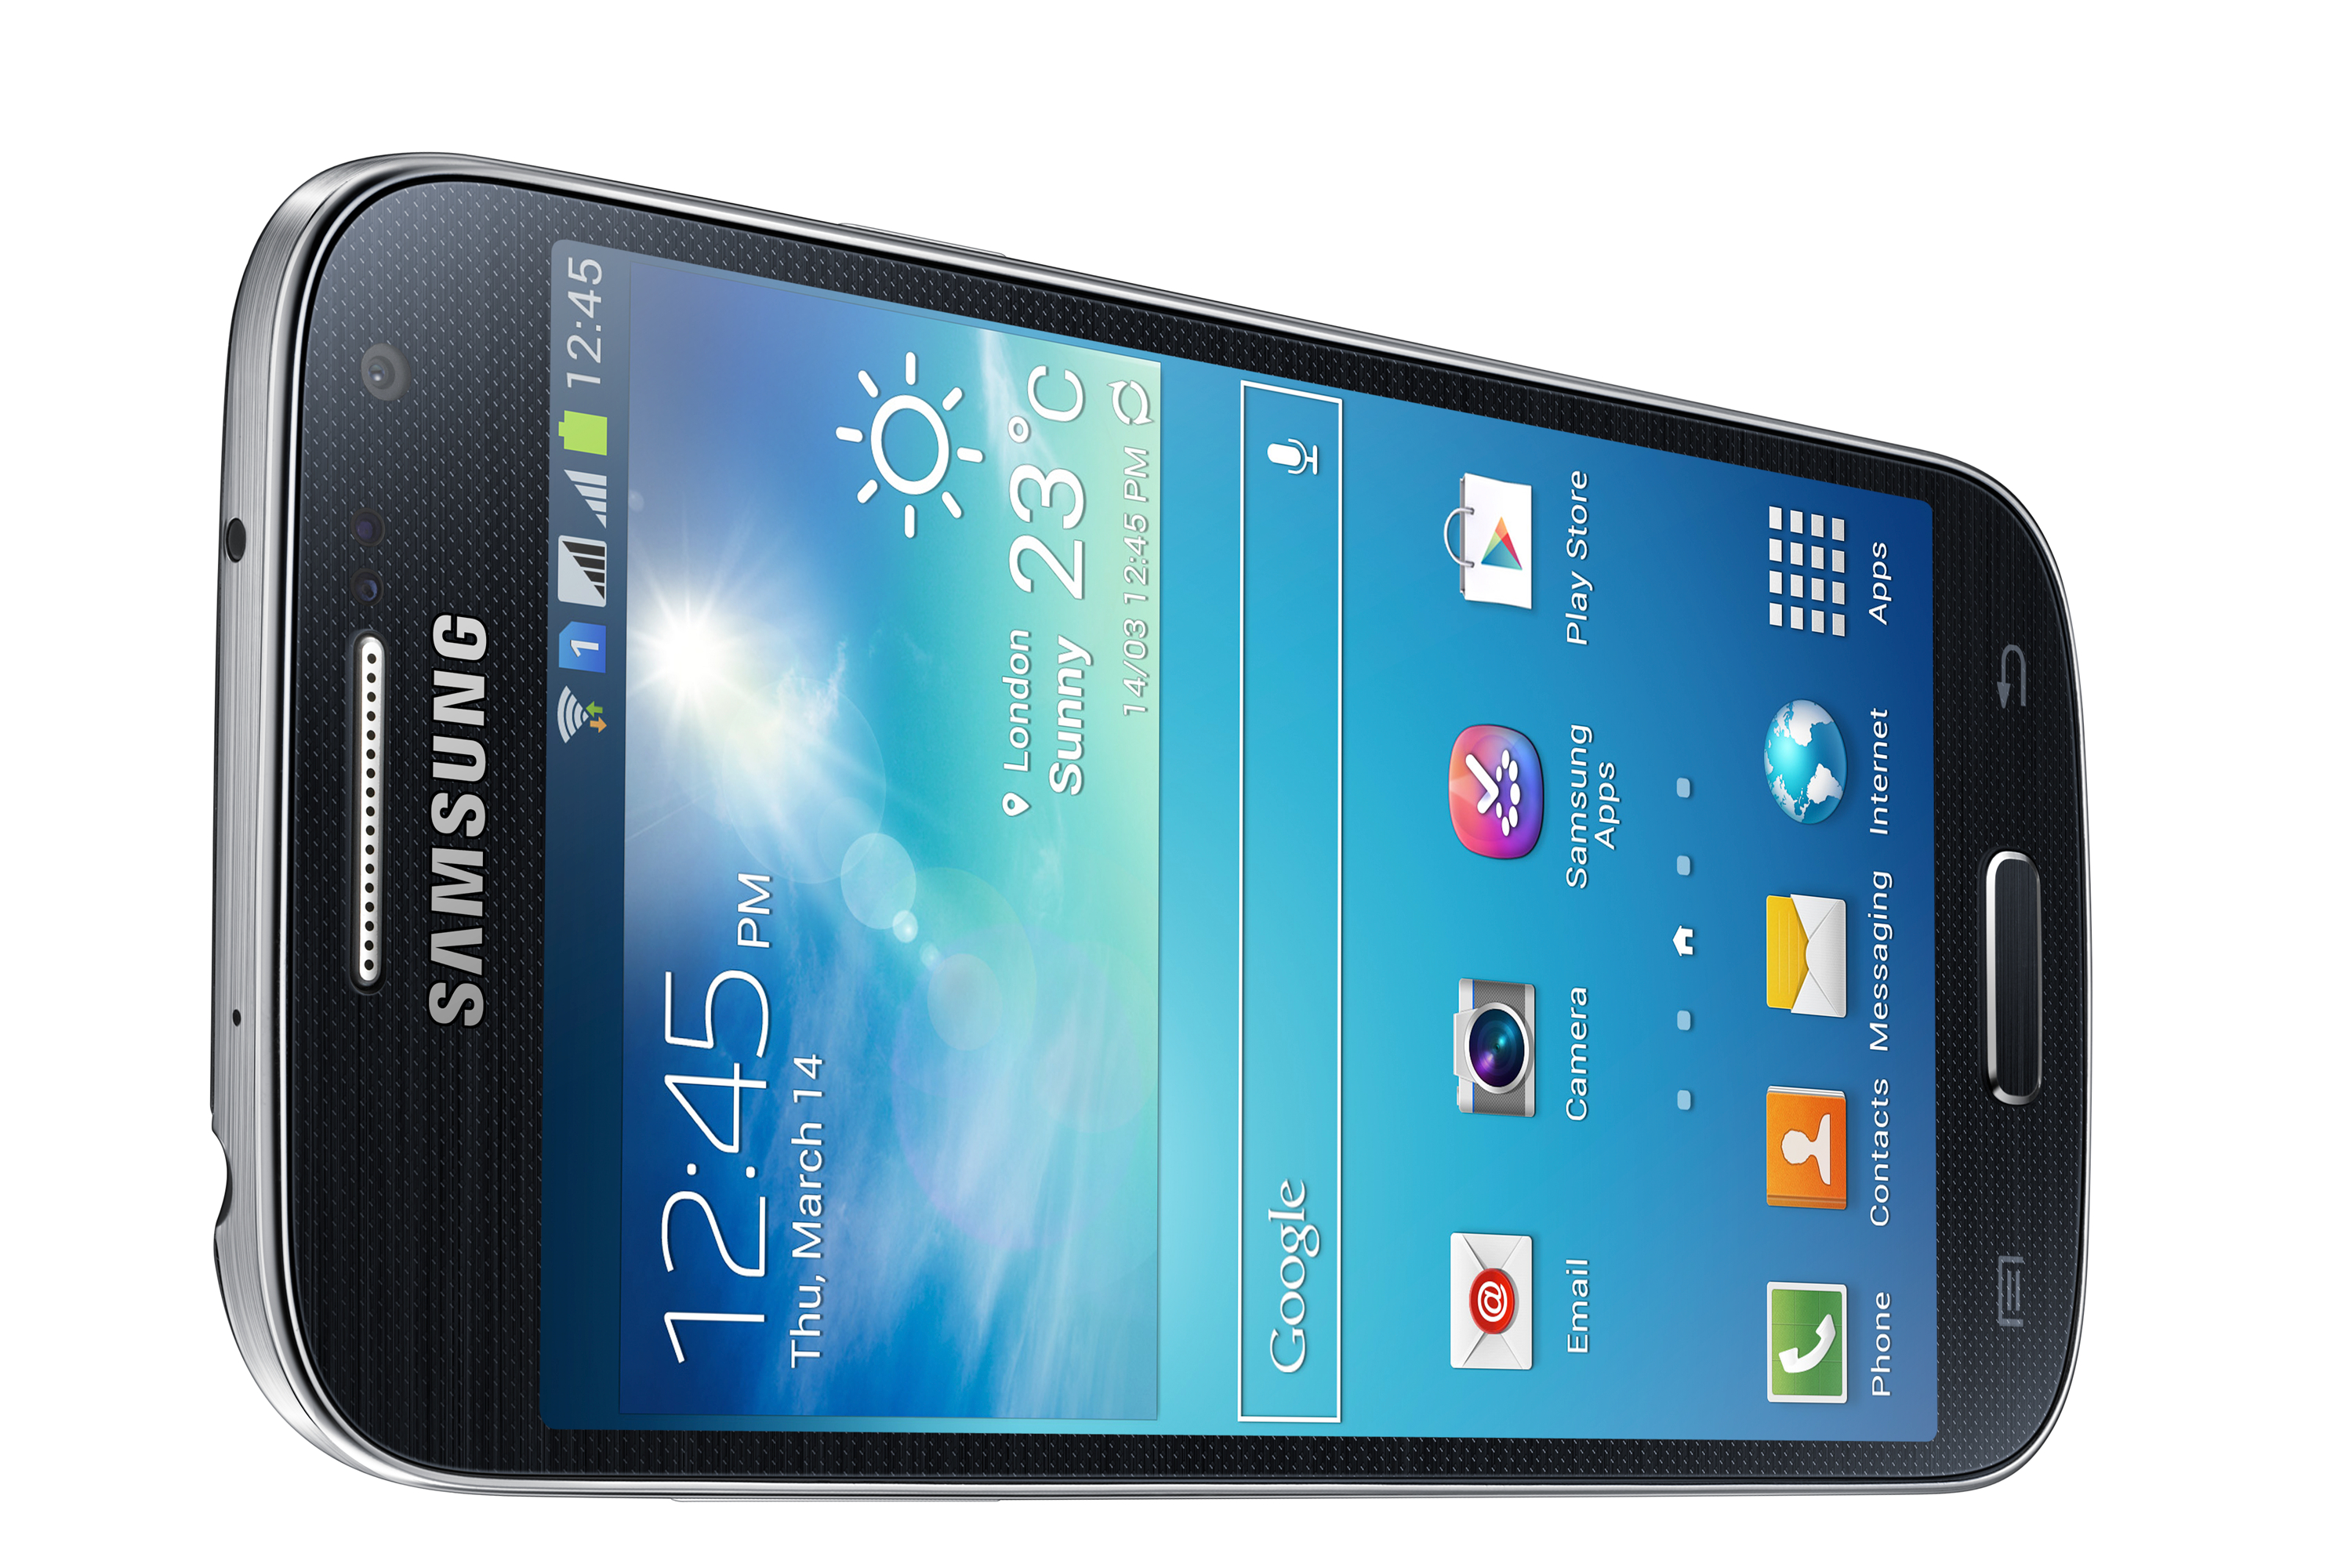 How to root samsung galaxy s4 mini gt i9192 - Android 4 4 2 Kitkat Update For Samsung Galaxy S4 Mini Duos How To Install It Manually